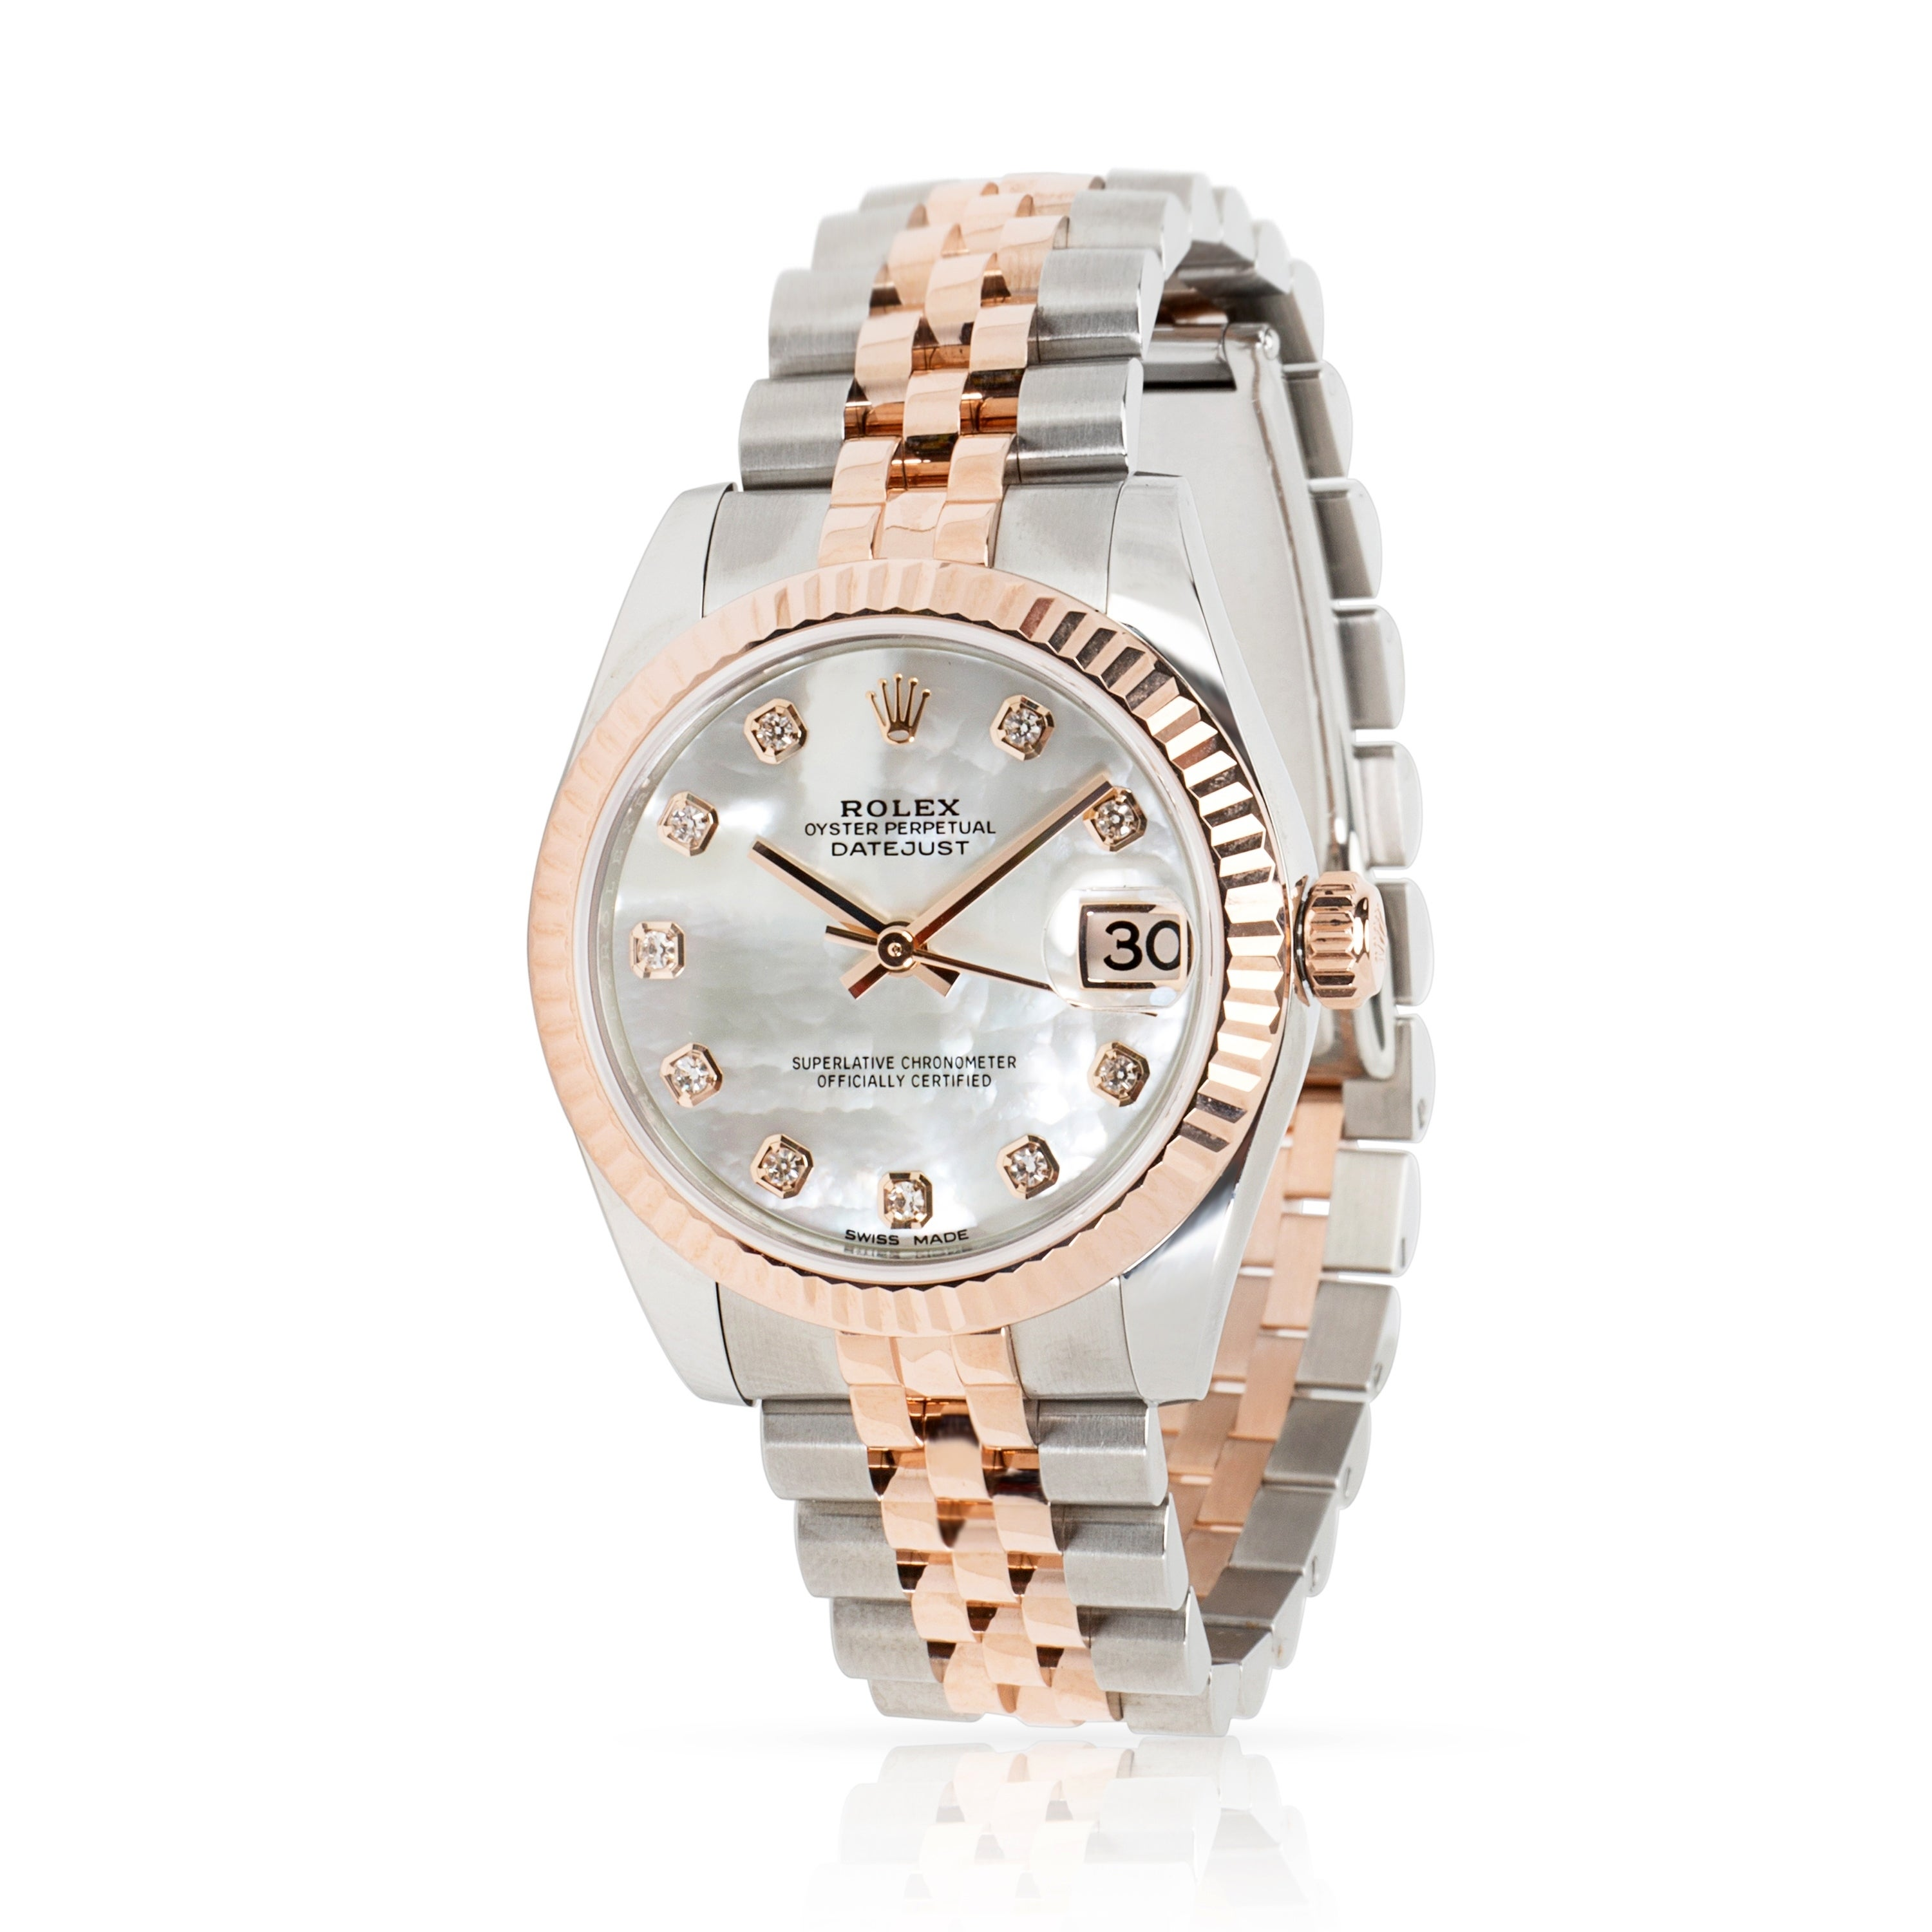 75e3235bffd Pre-Owned Rolex Datejust 178271 Unisex Watch in 18kt Stainless Steel/Rose  Gold